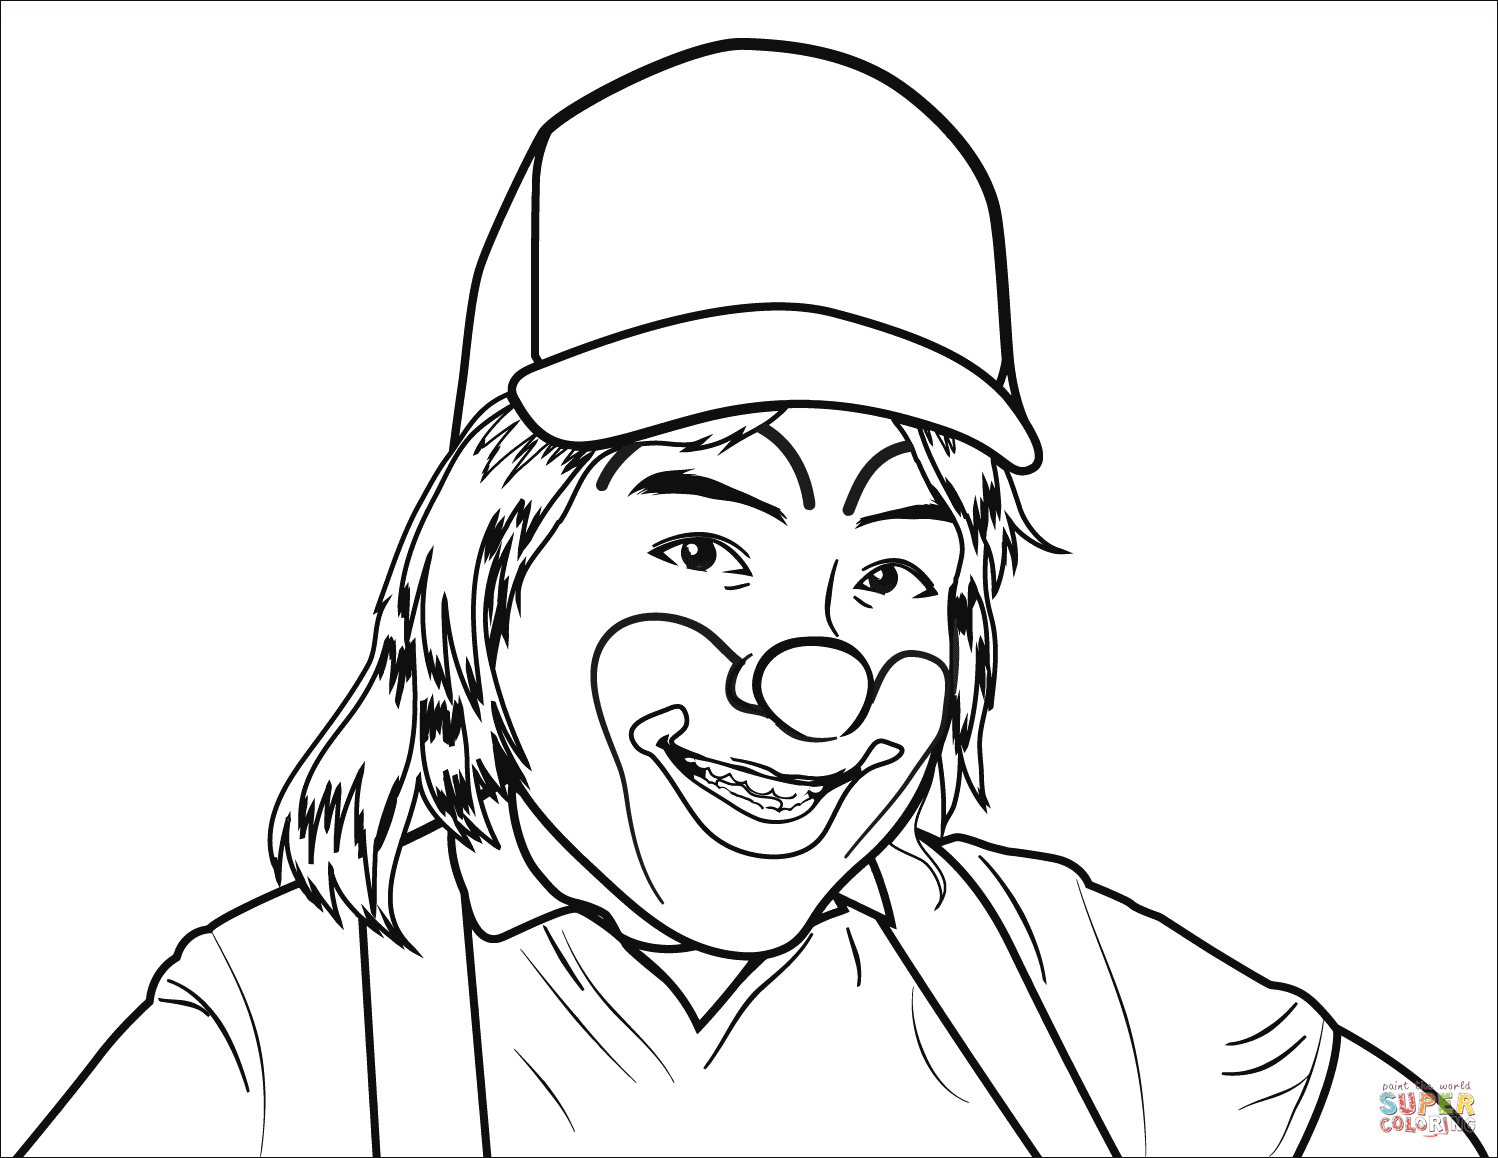 Smiling Coloring Pages Gallery 1q - Save it to your computer